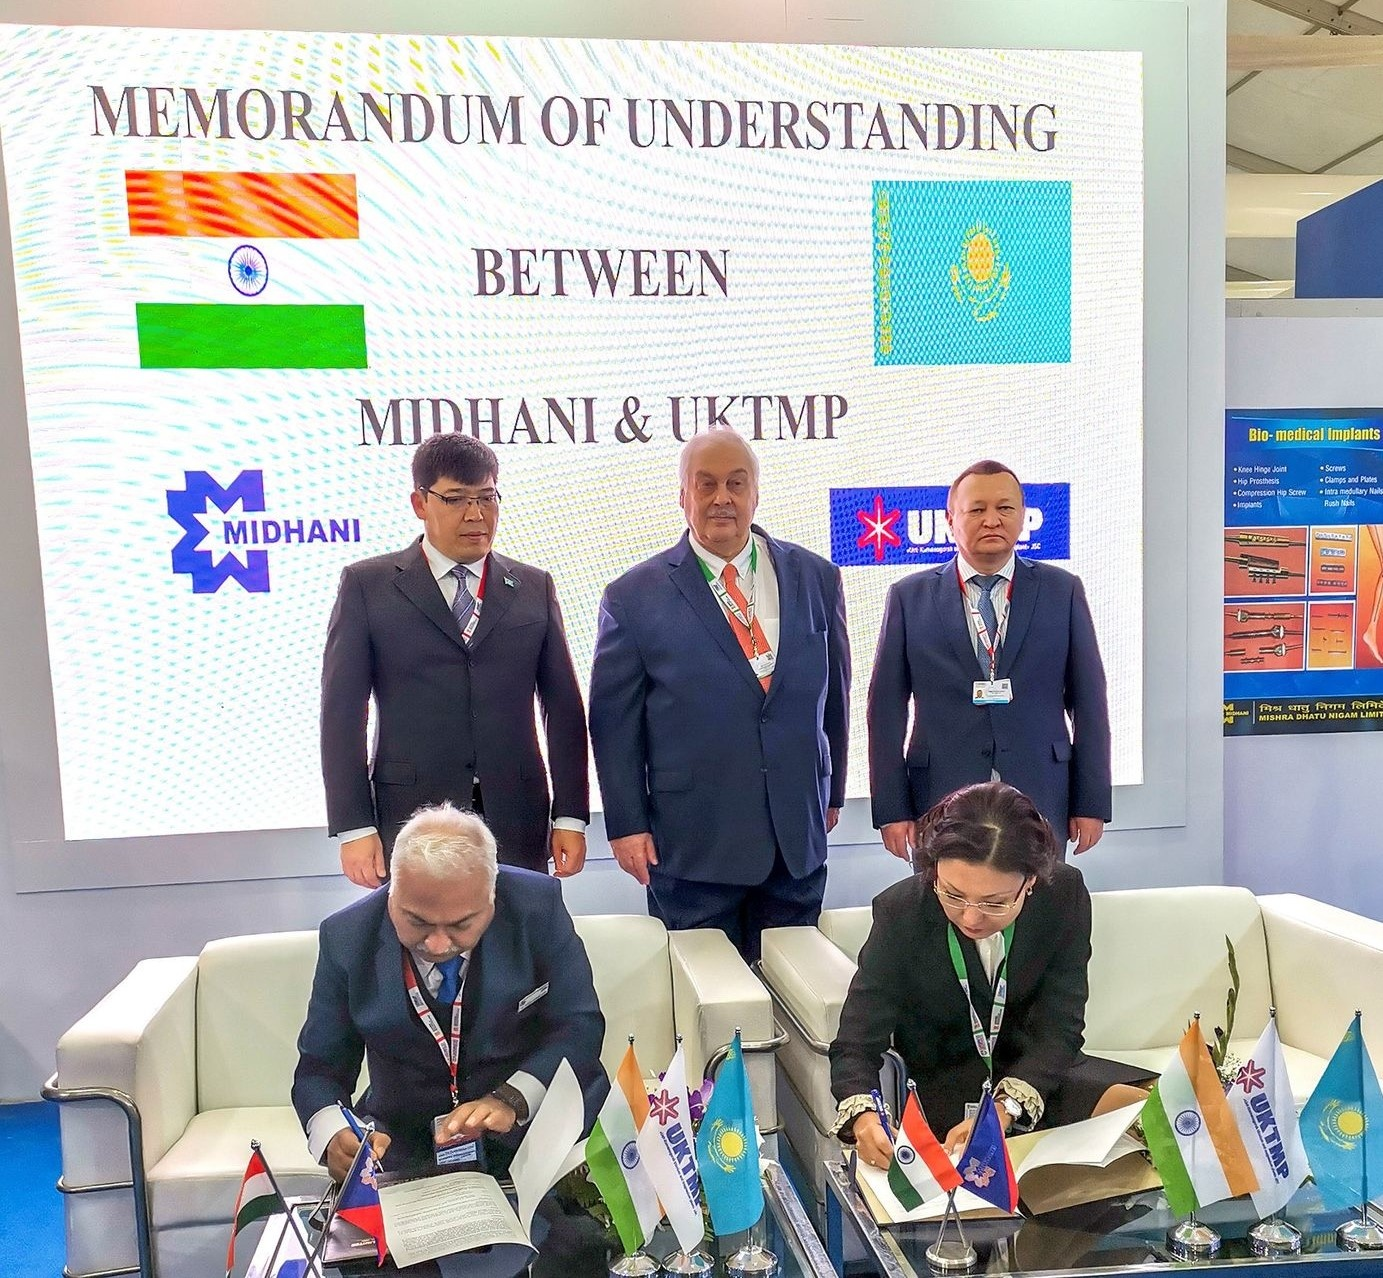 A MEMORANDUM of UNDERSTANDING SIGNED BETWEEN UKTMP JSC AND MIDHANI (INDIA)